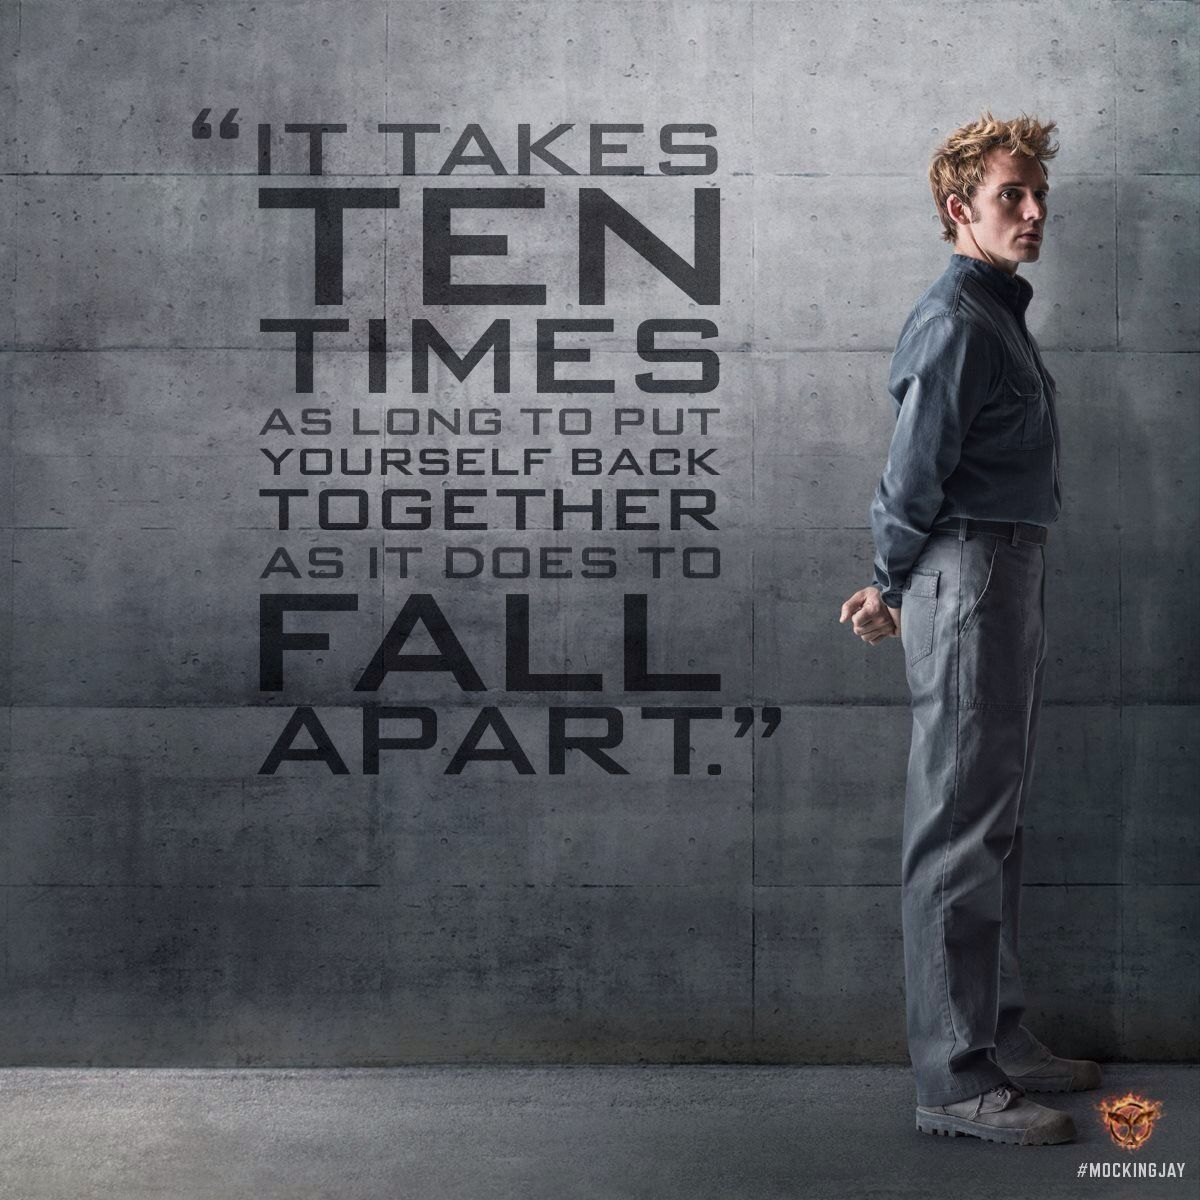 It takes ten times as long to put yourself back together as it does to fall apart Finnick Odair